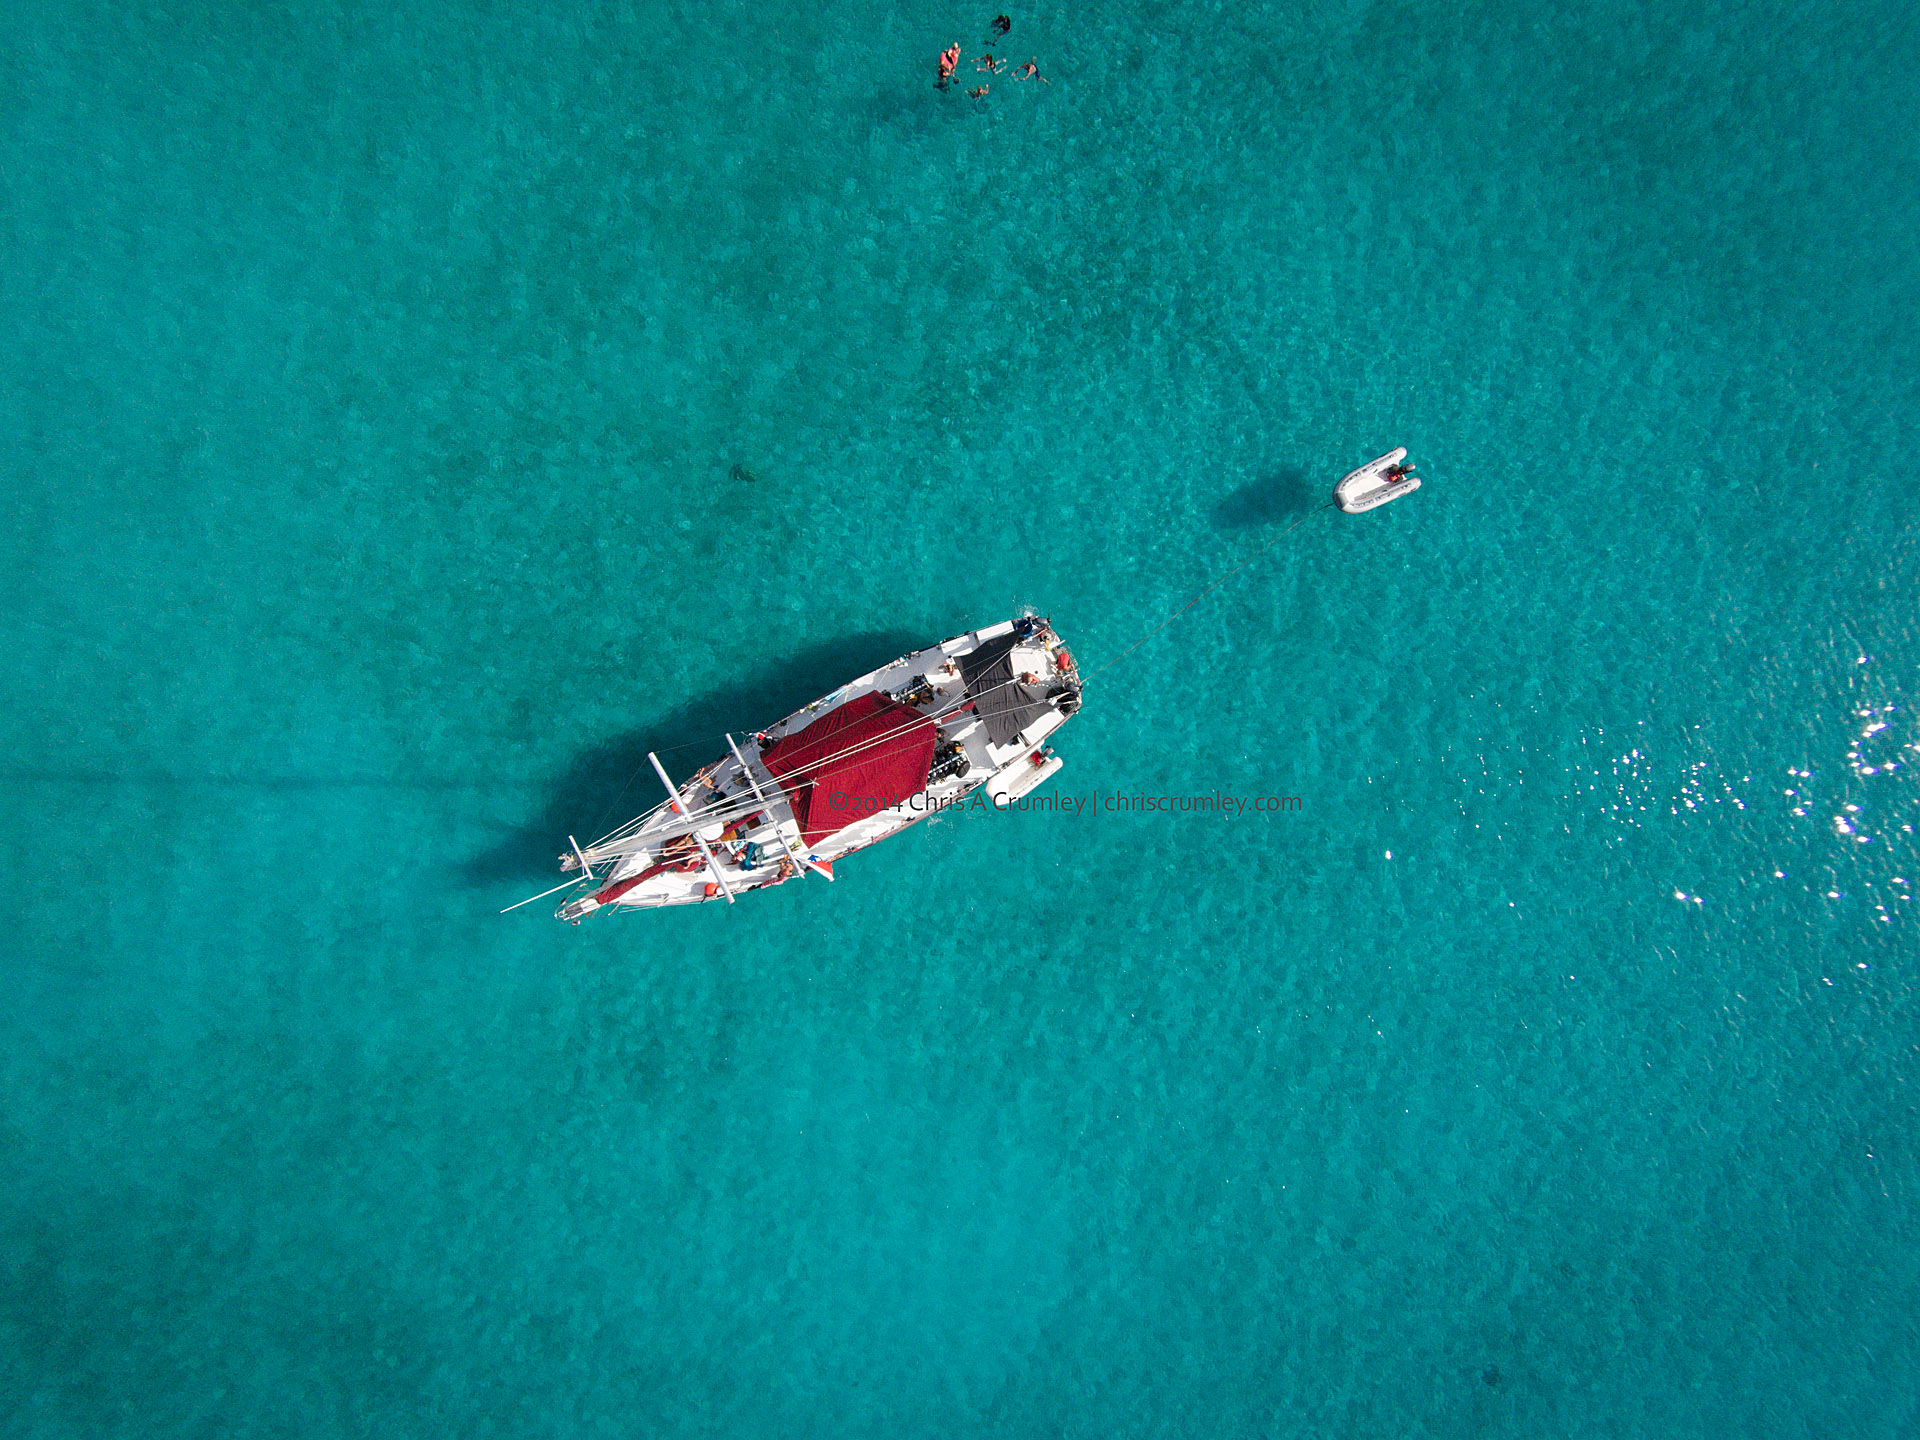 Drone aerial from Mermaid Portfolio Workshop - Exuma Cays, Bahamas Islands